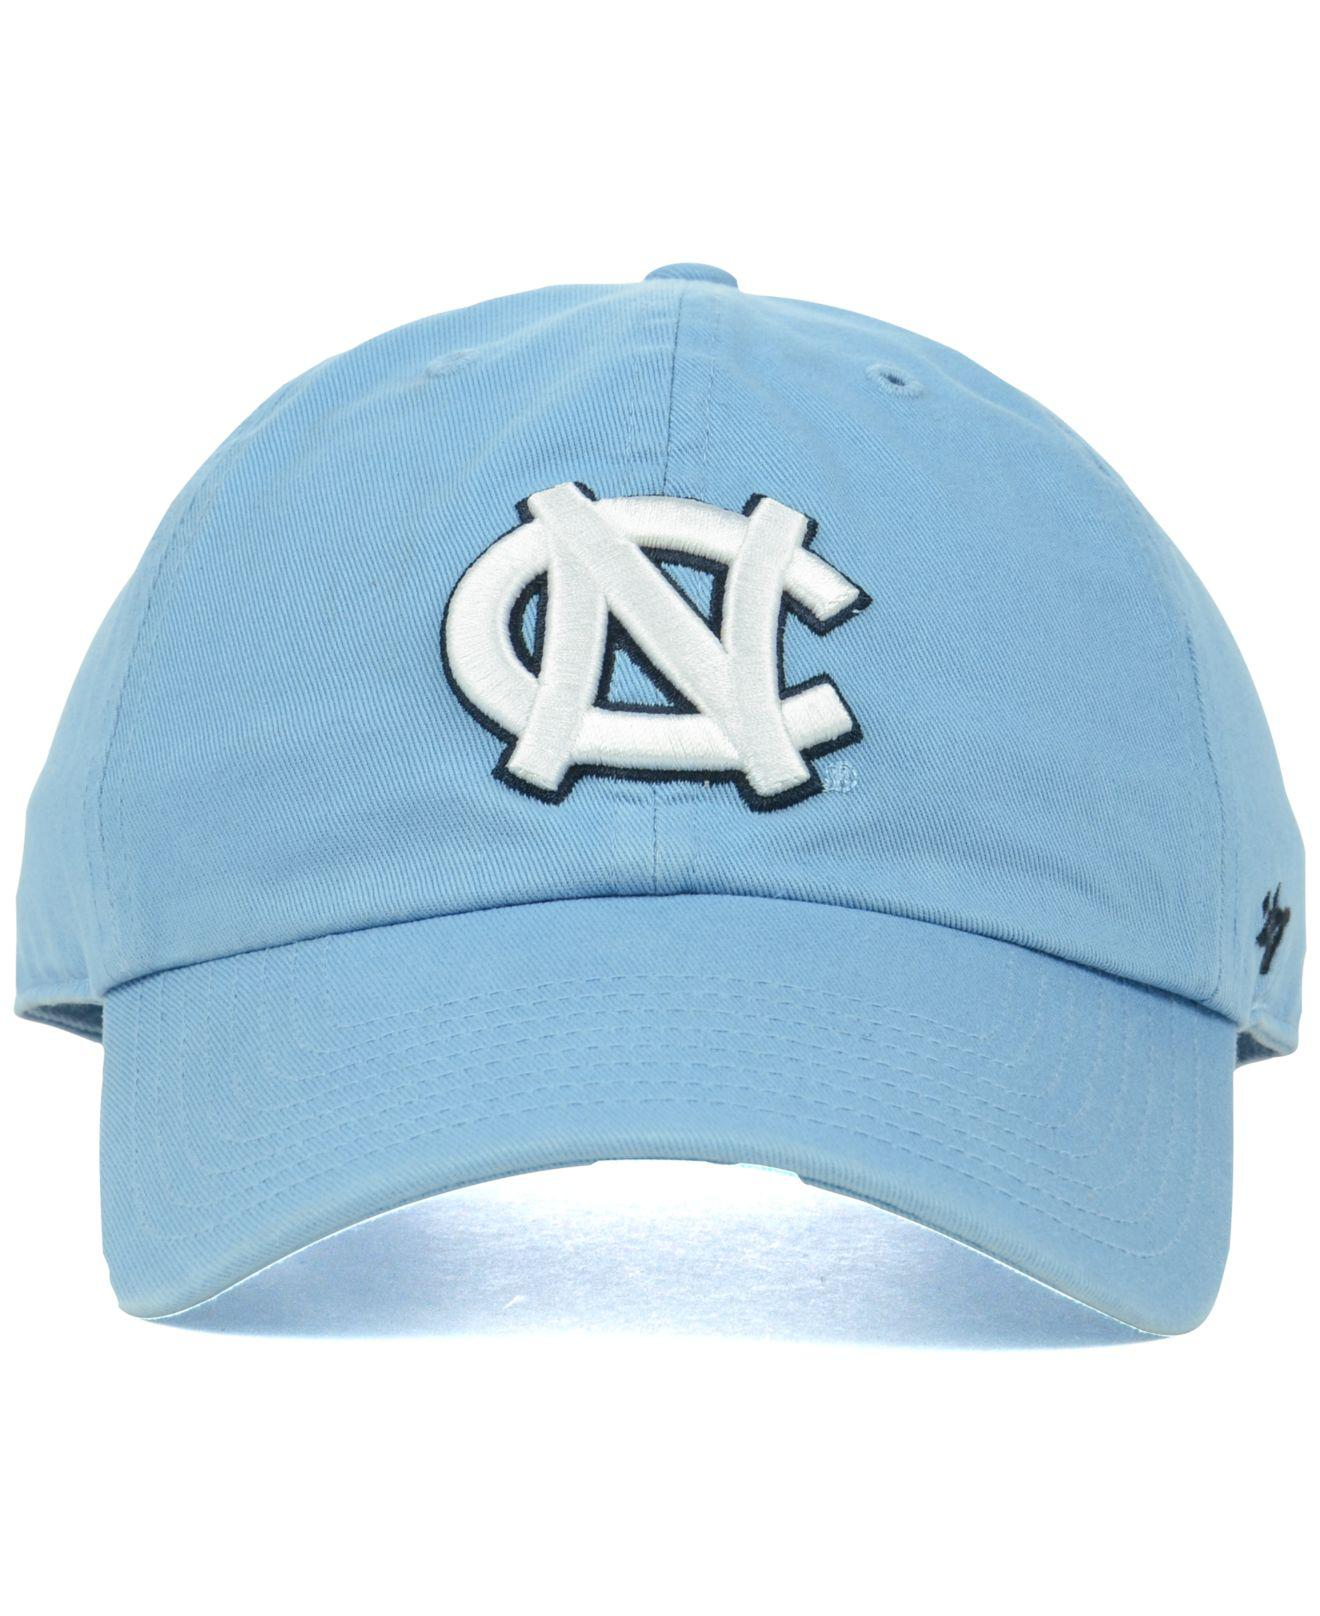 size 40 6a310 9ab1b clearance 47 brand blue north carolina tar heels ncaa clean up cap for men  . view